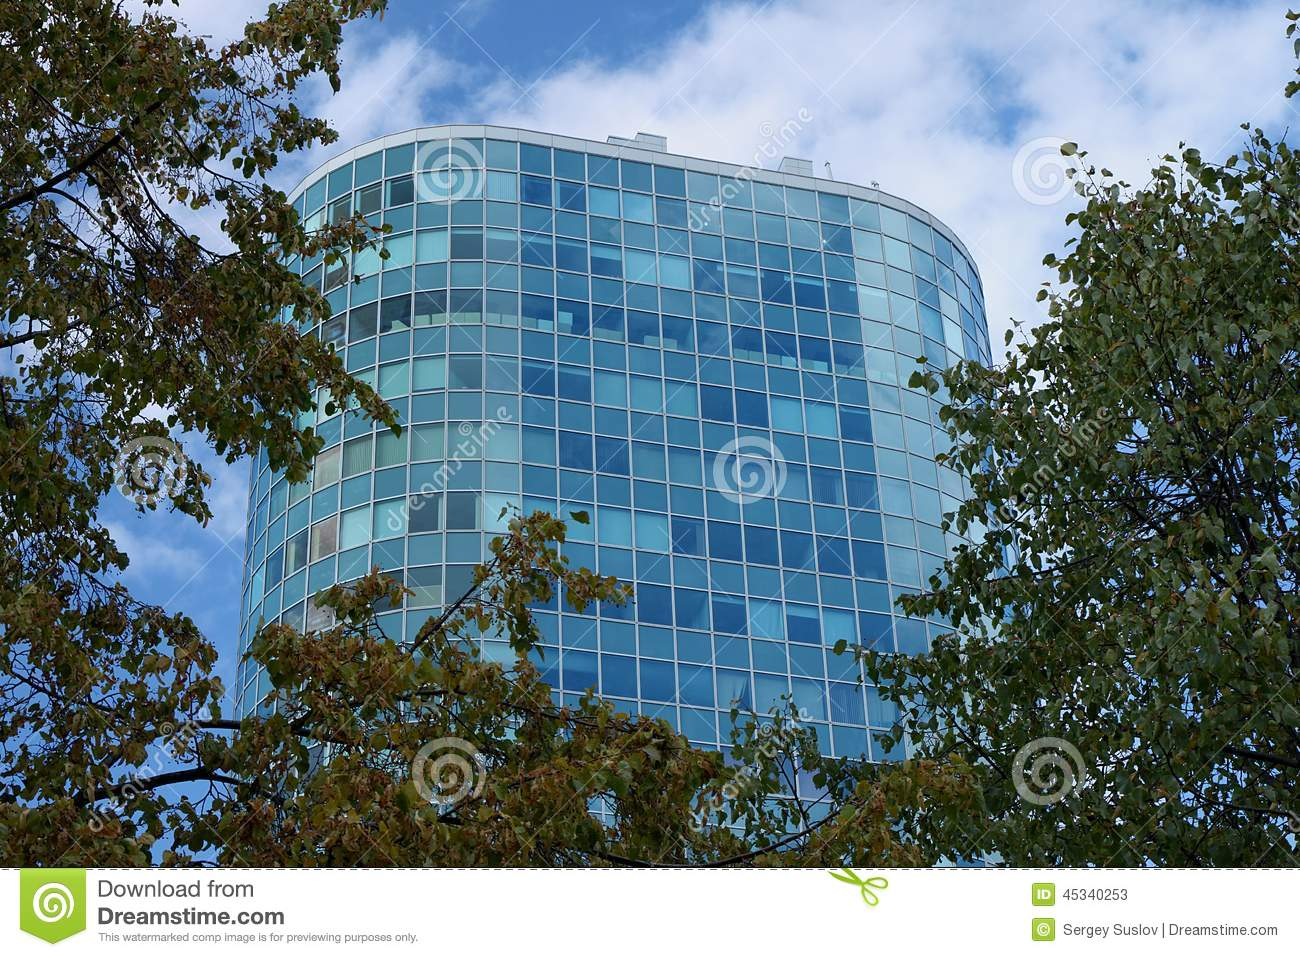 A beautiful high blue glass office building surrounded by trees